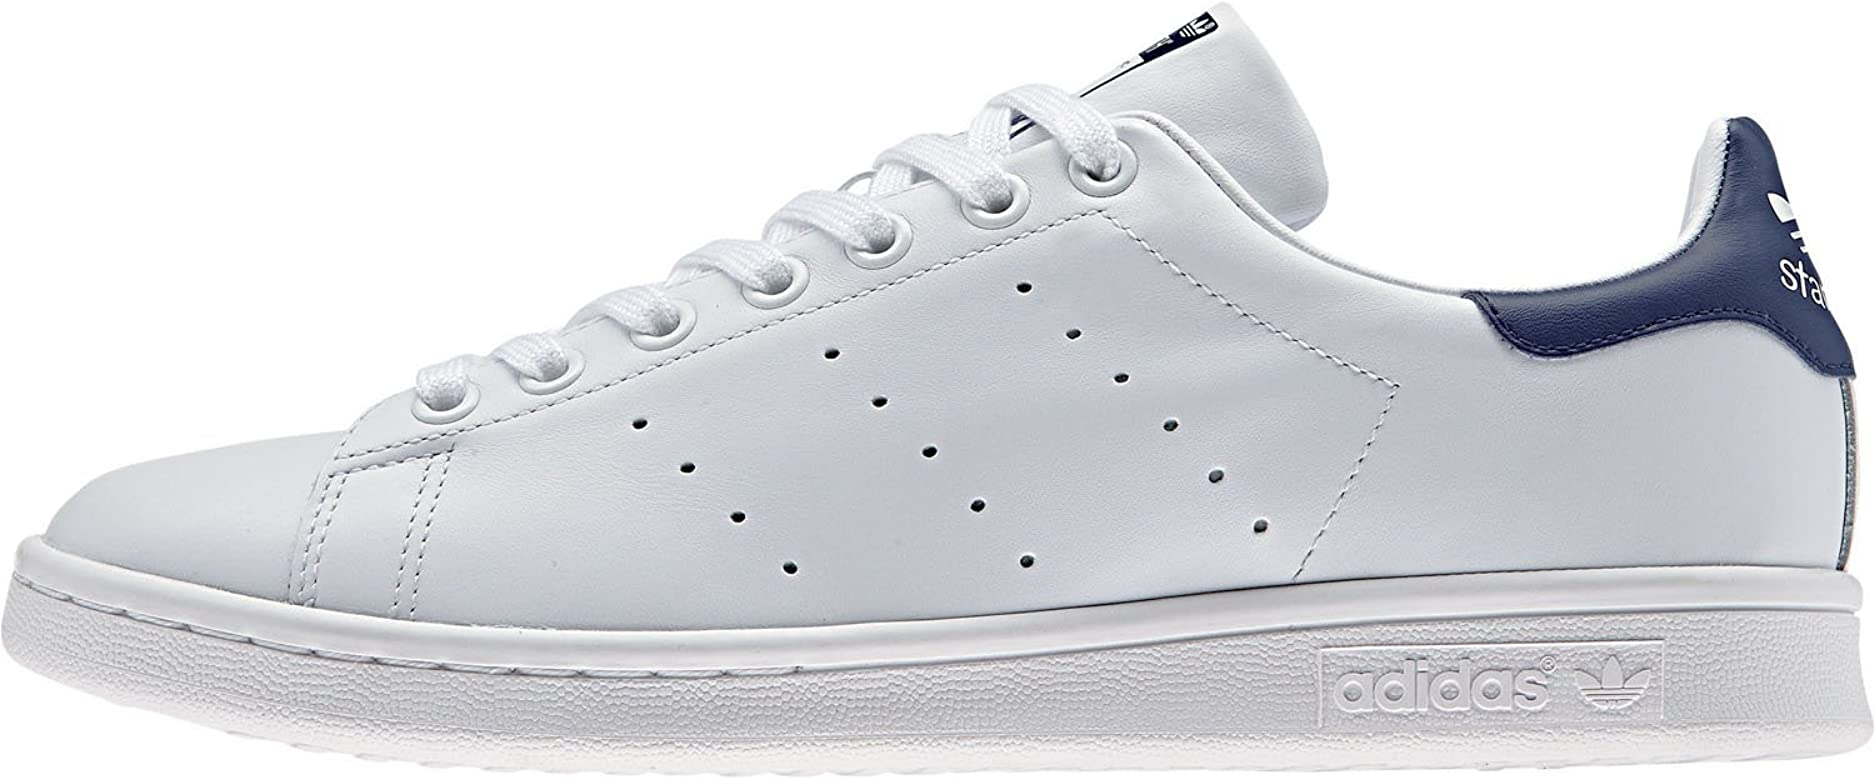 Adidas Originals Stan Smith, Zapatillas de Deporte Unisex Adulto, Blanco (Running White/New Navy), 41 1/3 EU: adidas Originals: Amazon.es: Deportes y aire libre